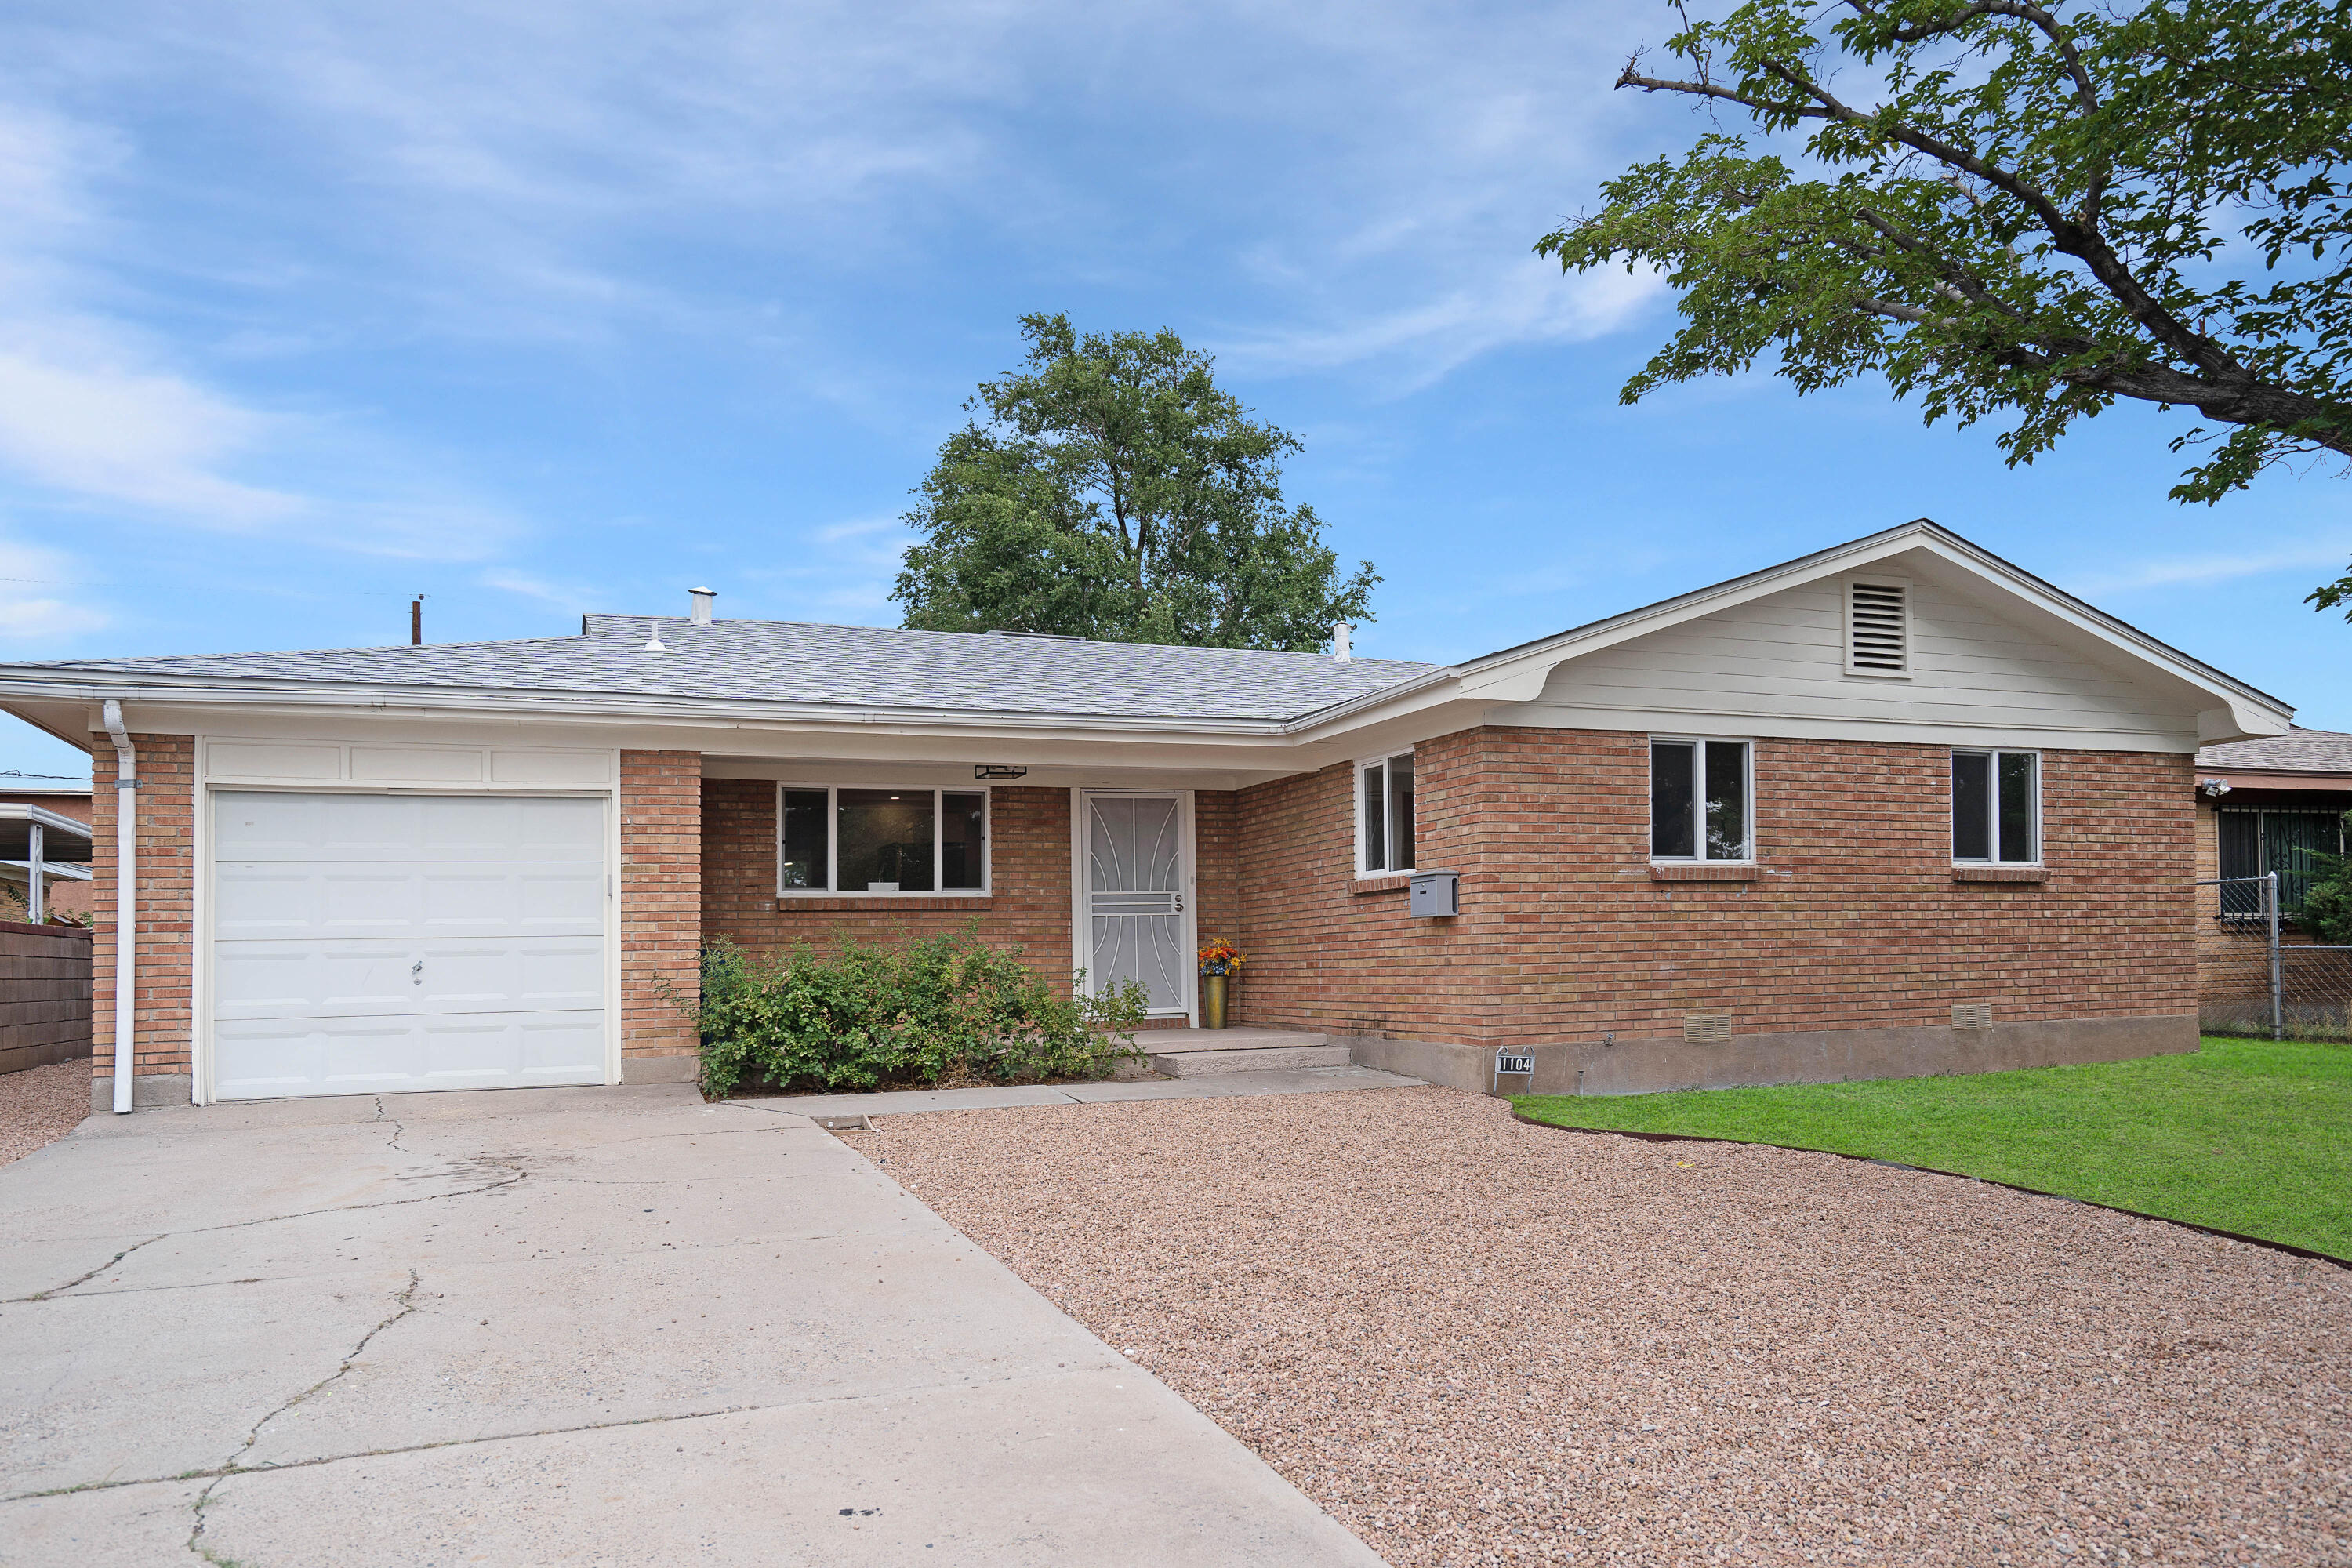 Welcome to this amazing renovation with new Refrigerated Air, Stainless Steel Appliance package, updated Kitchen, Bathrooms, bedrooms, and so much more. Enter to an open floor plan, designer luxury vinyl, amazing stacked brick fireplace, and recessed lighting throughout. The large new vinyl windows let in all the natural light. The kitchen is adorned with Quartz Countertop, large format tiles, & brand new cabinets. The dining room outlooks to the large backyard (w/ Backyard access!). The service room is oversized with its own entrance & soaking sink. Bedrooms have plenty of storage and the bathrooms are beautifully done with rainfall showers. New tile throughout the bathrooms! Located near Kirkland Airforce Base and easy access to shops. Schedule a showing today!